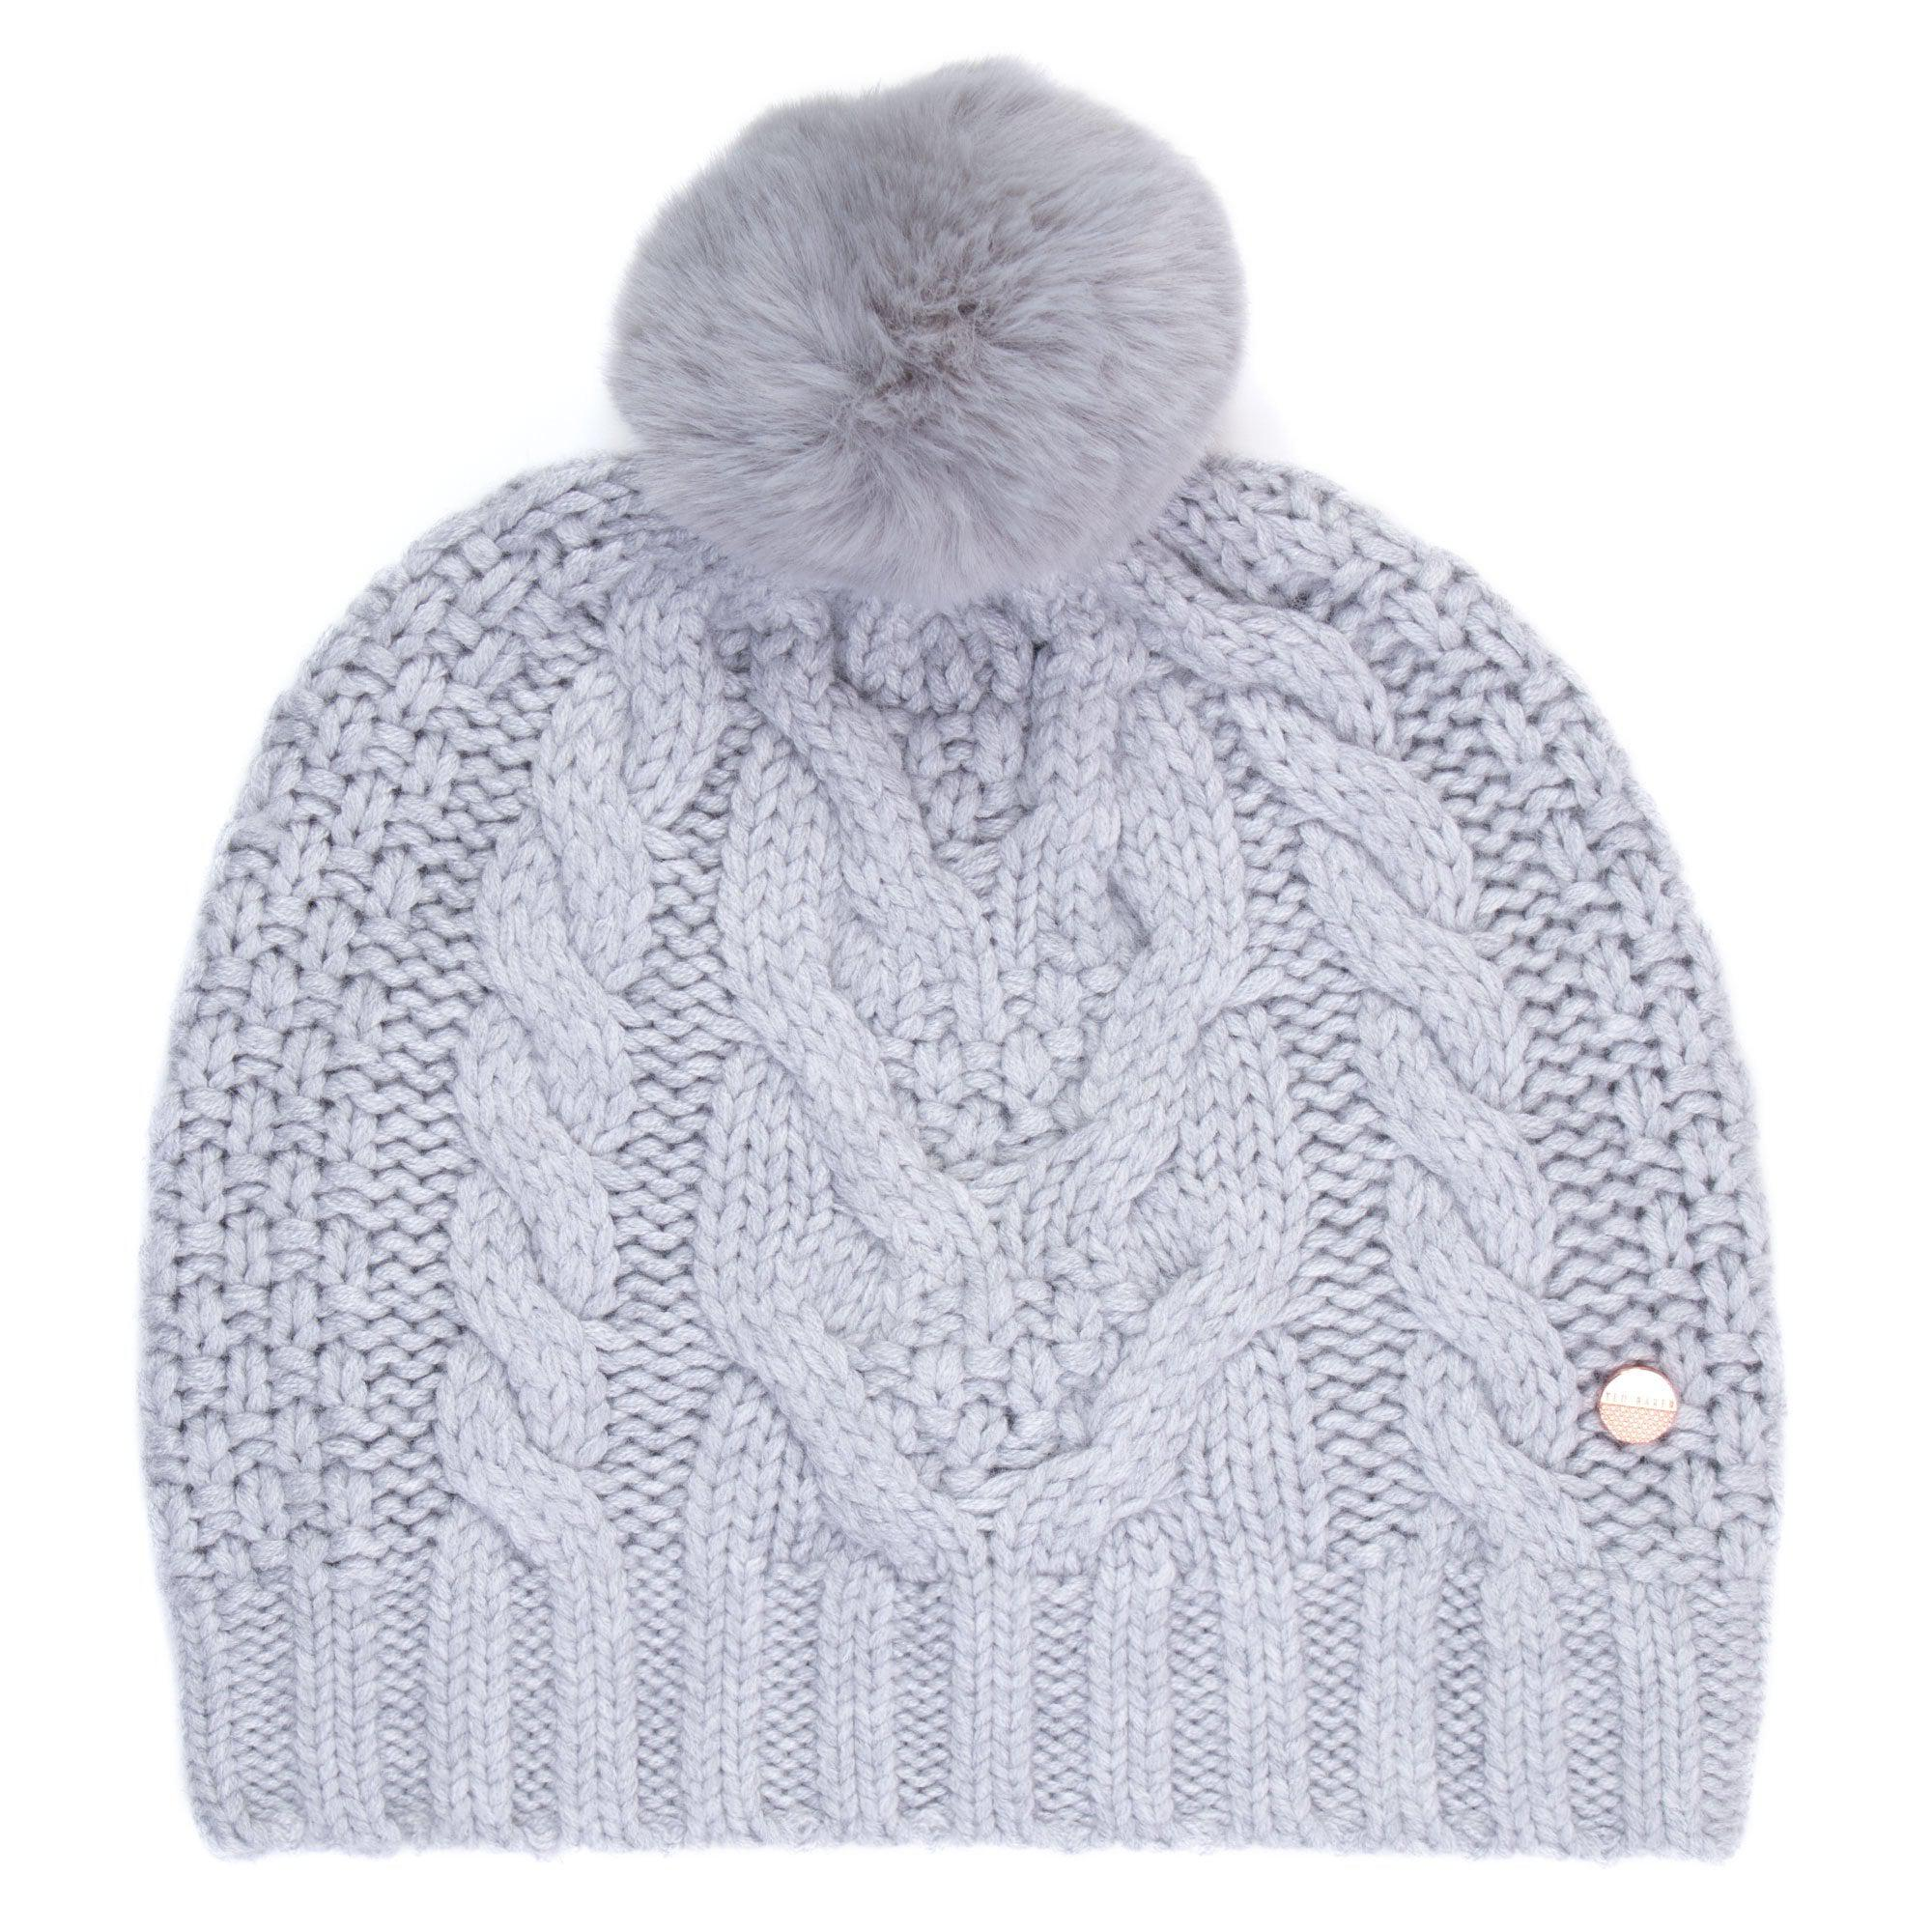 c63bc7617a7c3 Ted Baker Quirsa Cable Knit Pom Hat in Gray - Lyst